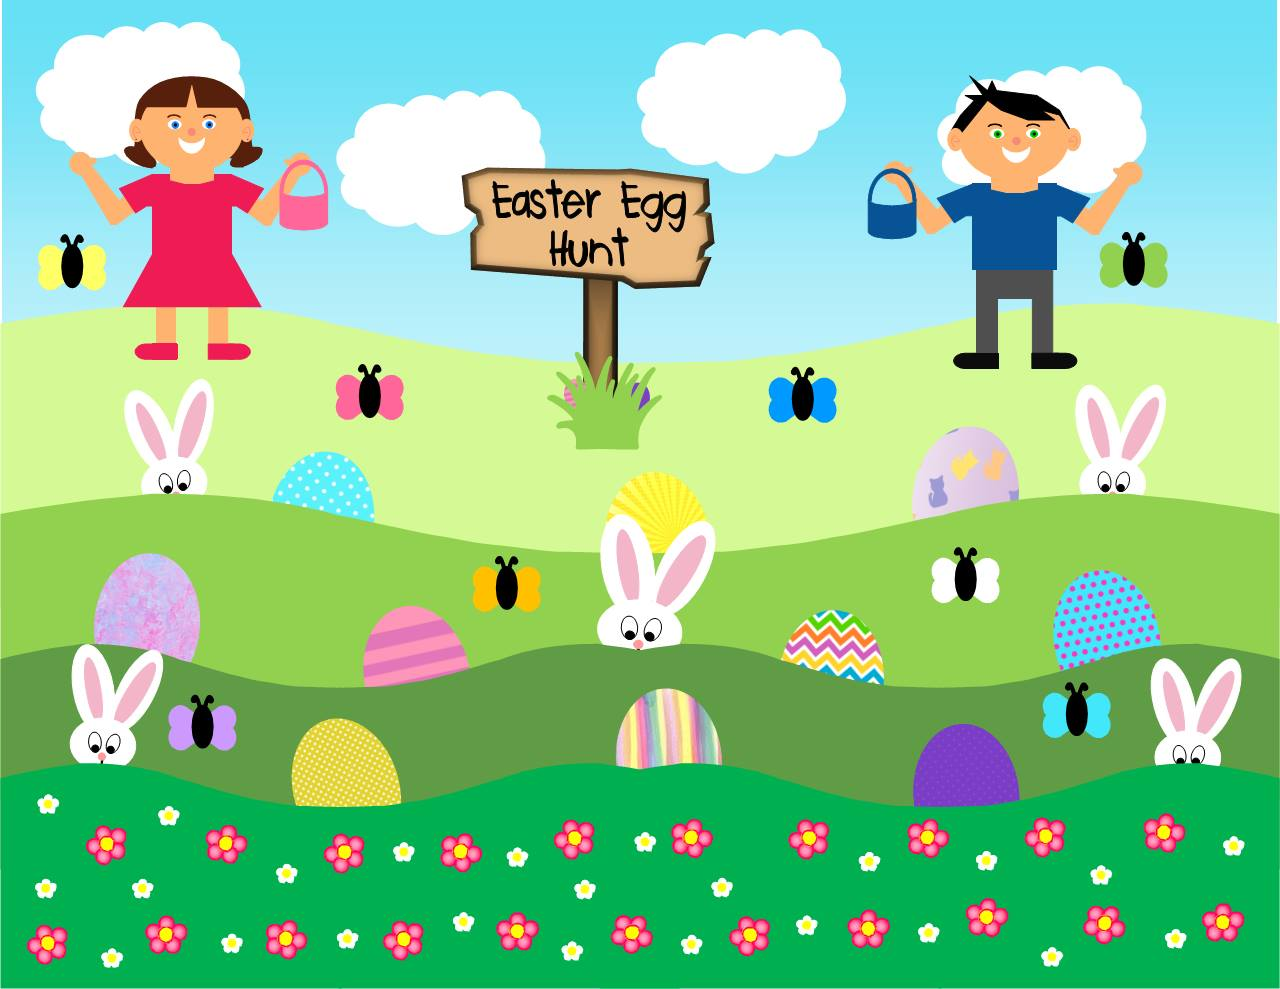 Easter story time @ bedford public library system  March 30th at 10:30am-11:30am  15583 Forest Rd. Forest, VA 24551  Hop on over to the Forest Library for springtime stories! We will also learn a song, do fun activities, and make a craft. Don't forget to help us hunt for Easter eggs outside (weather permitting)!!